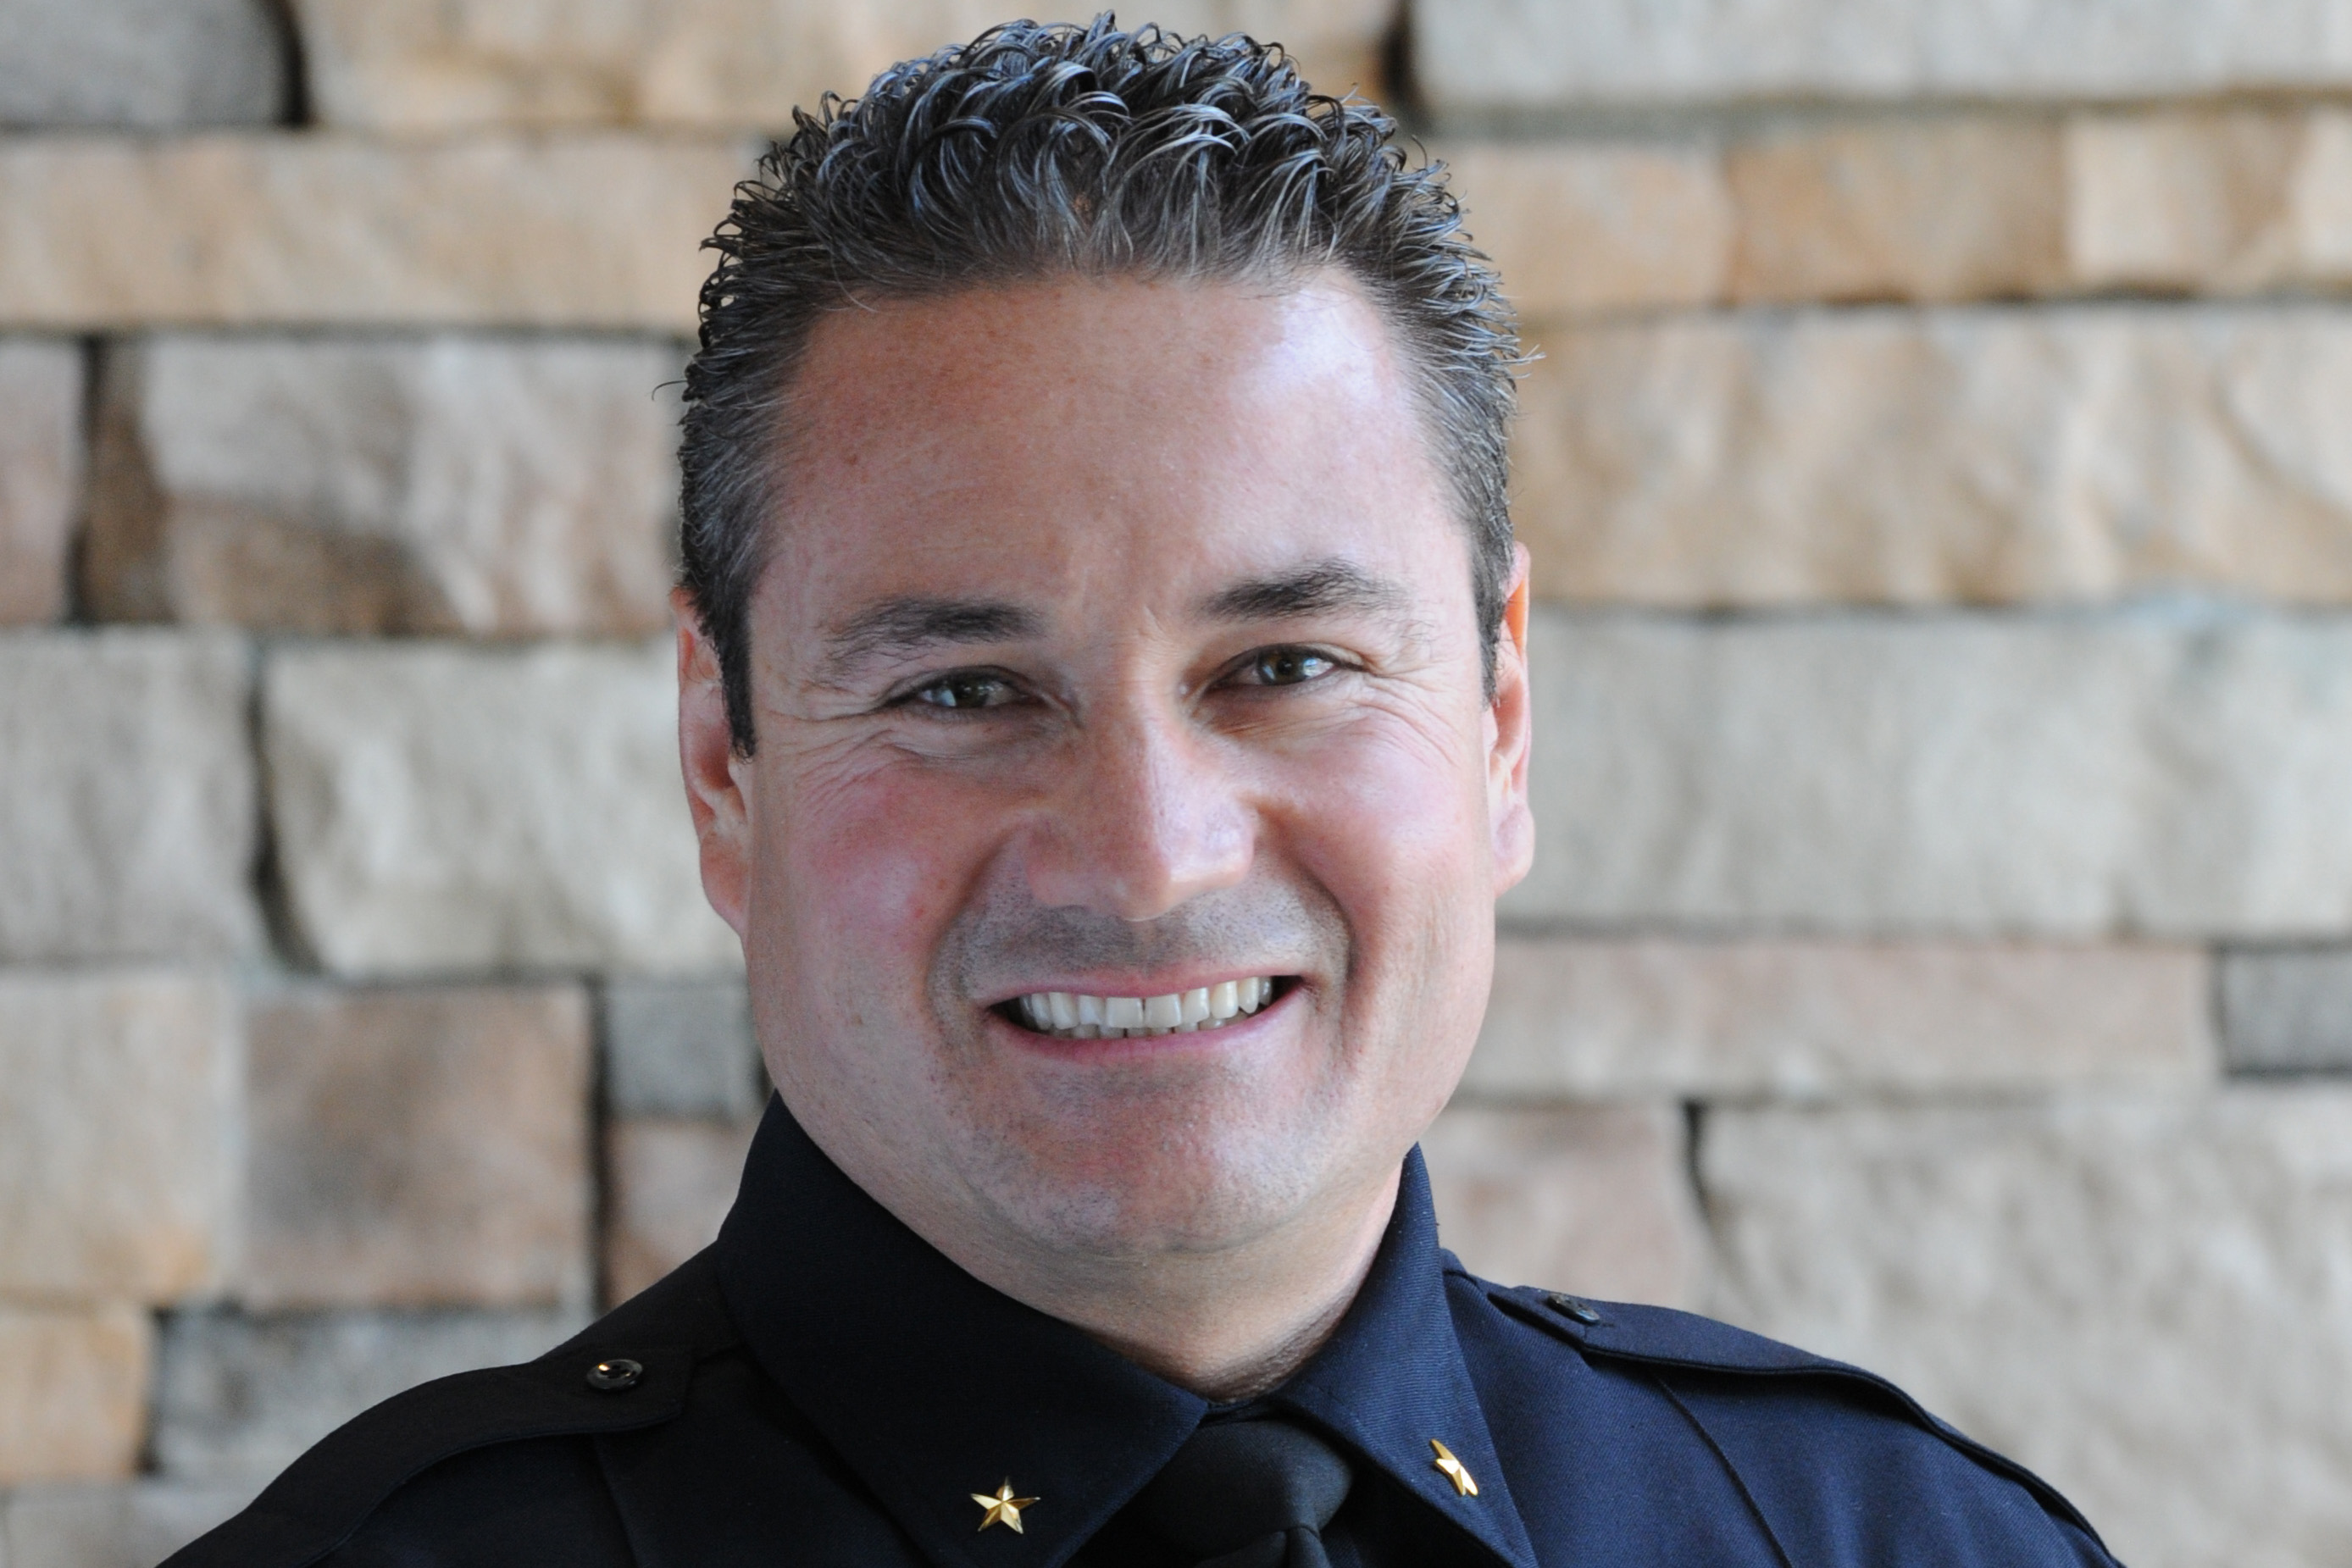 <p>Paul Pazen has been named the new chief of police in Denver.</p>